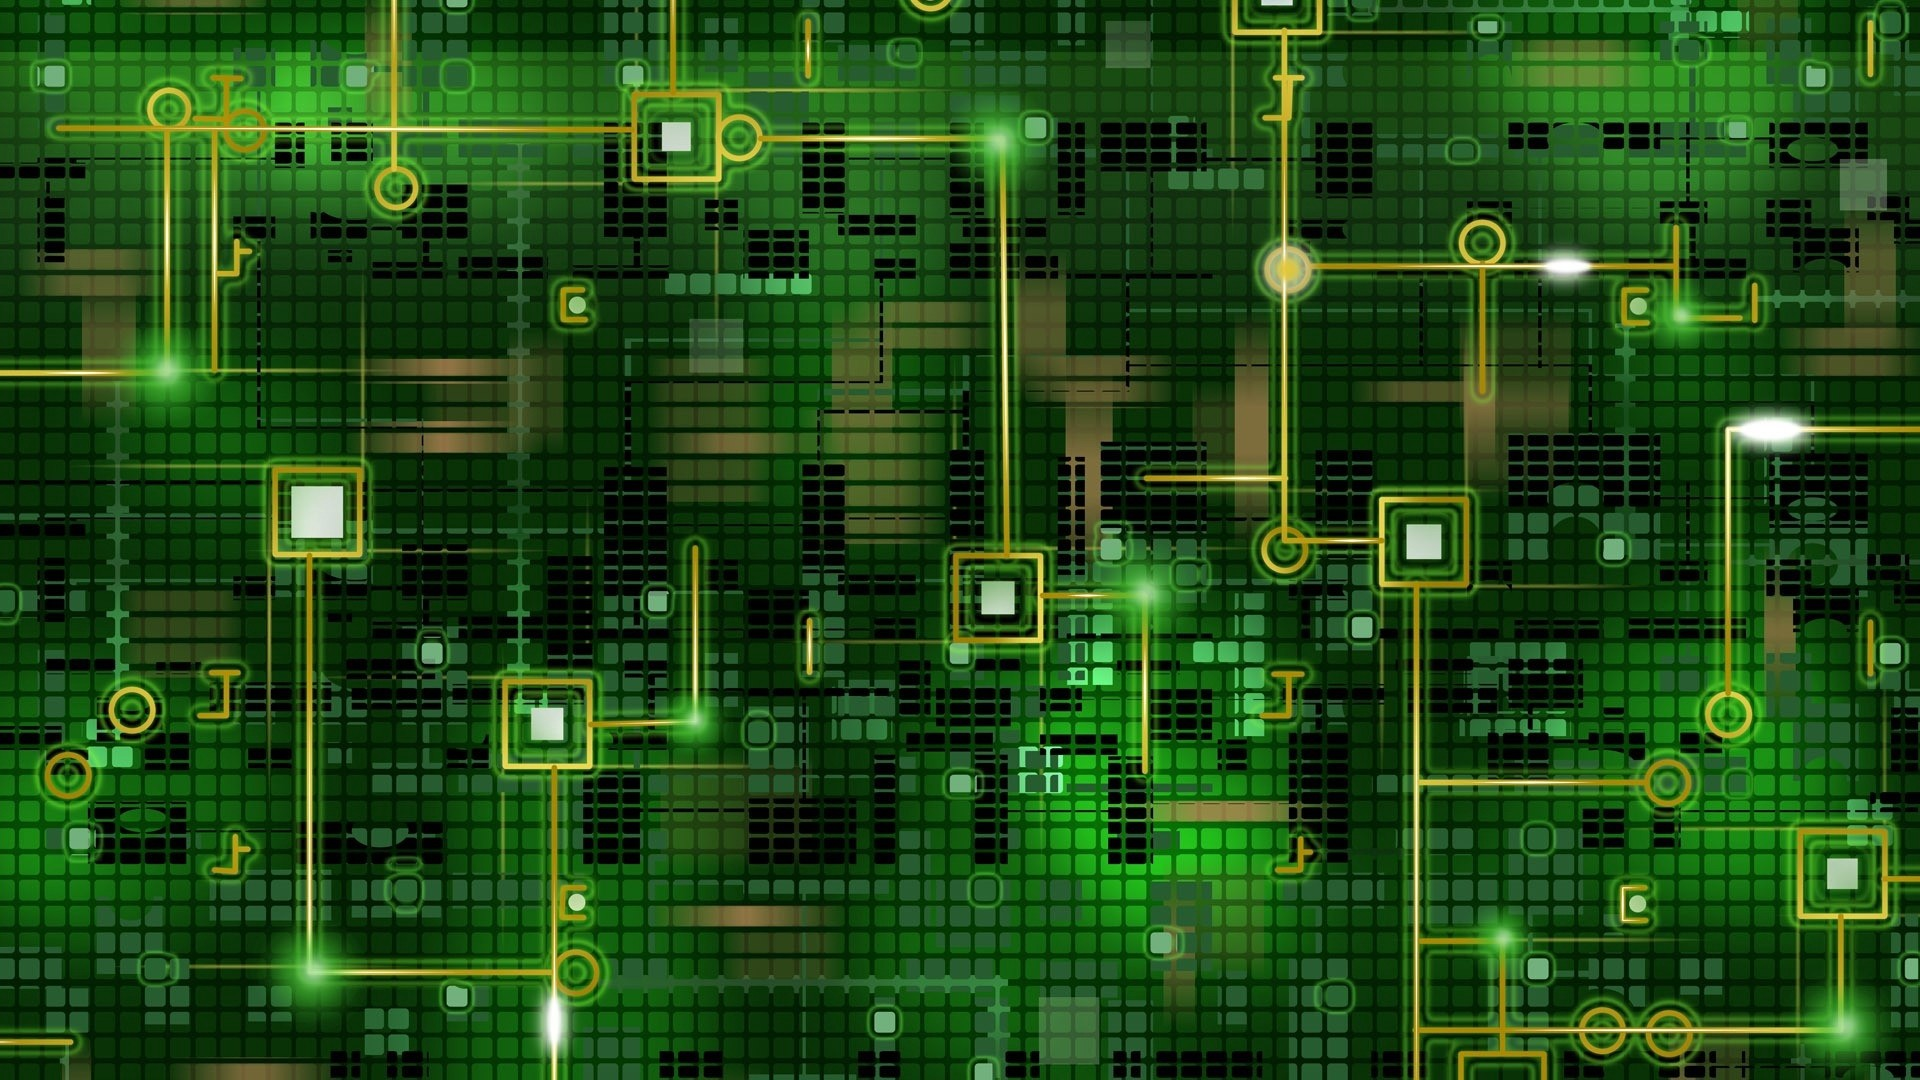 Res: 1920x1080,  Wallpaper chip, grid, background, black, green, line, circuit